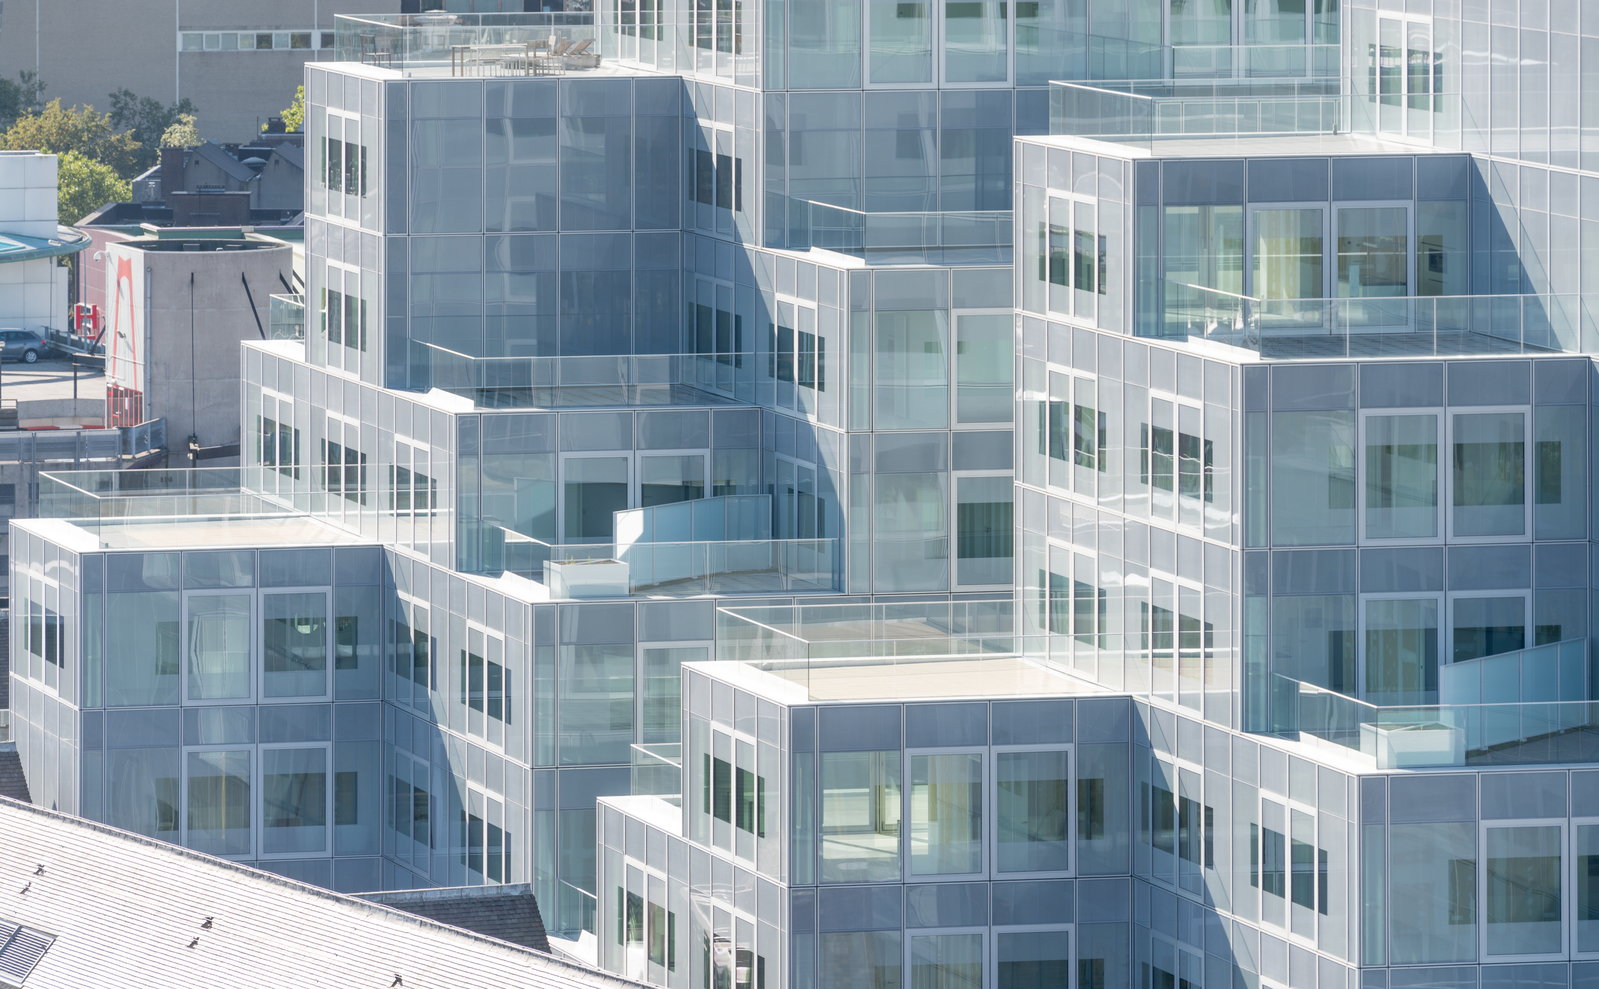 OMAu0027s Stacked Timmerhuis Project In Rotterdam Edges Closer To Its December  Opening